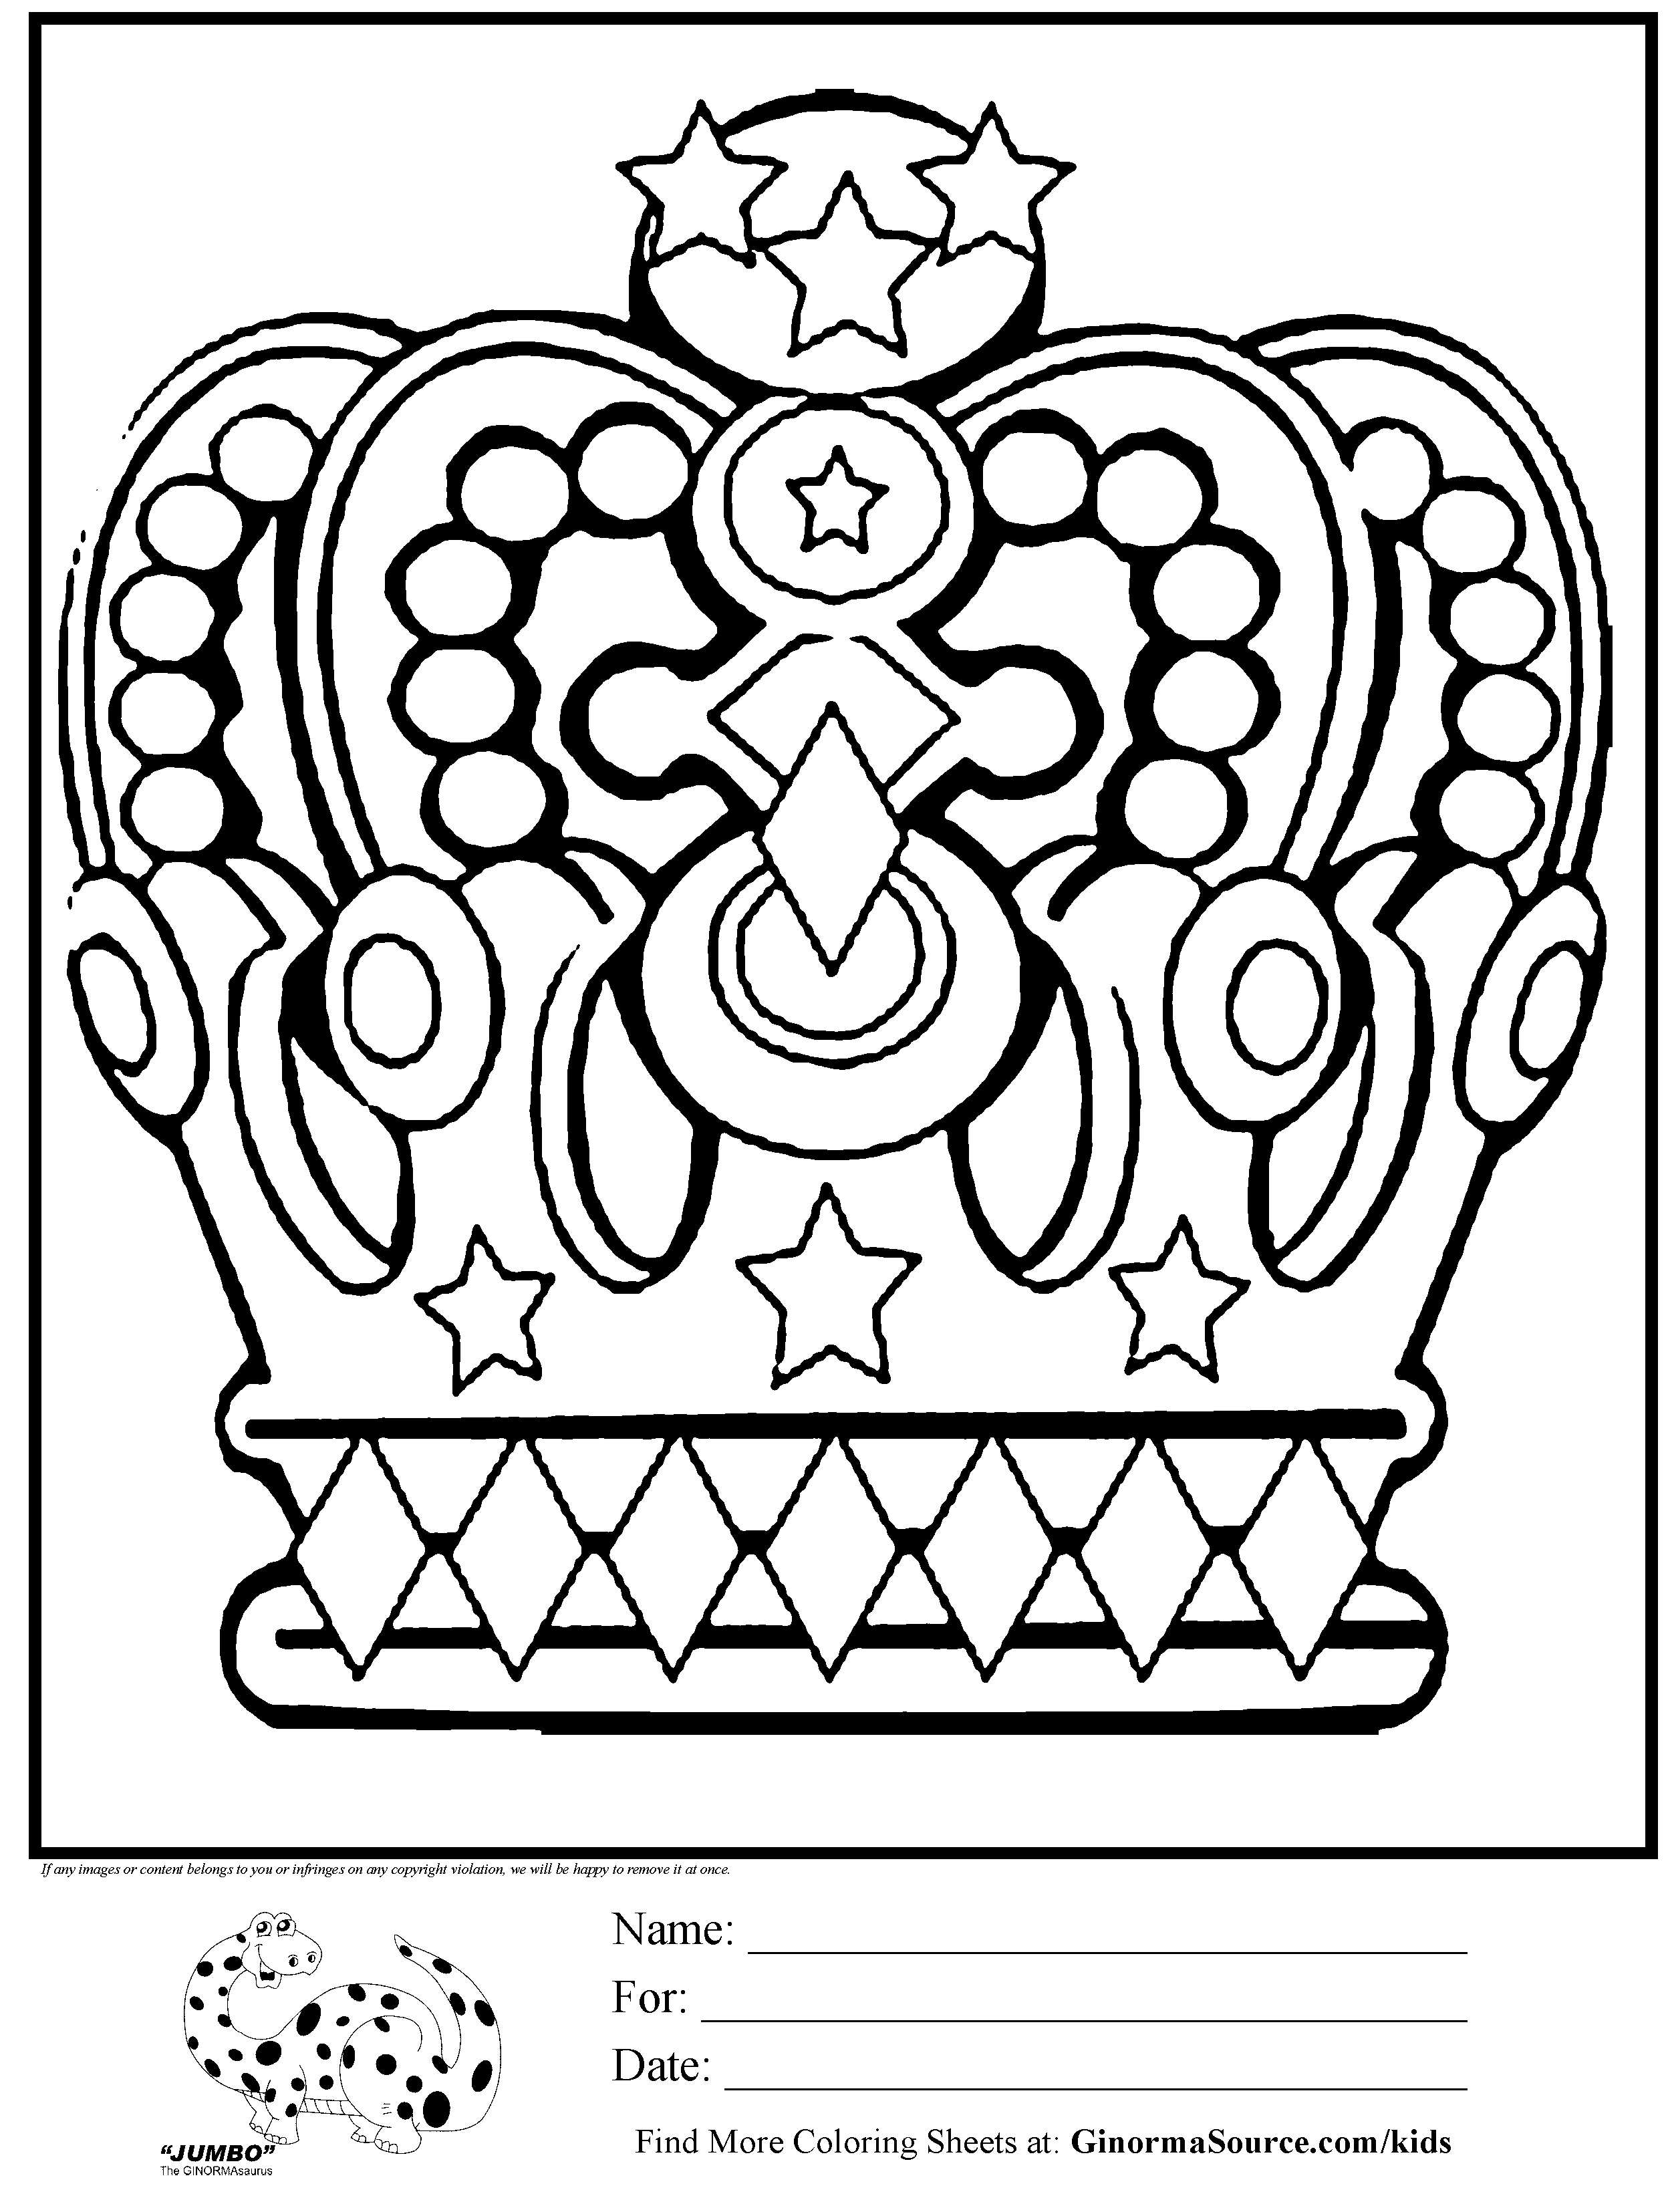 Incroyable C Is For Crown; Coloring Pages For Other Letters?